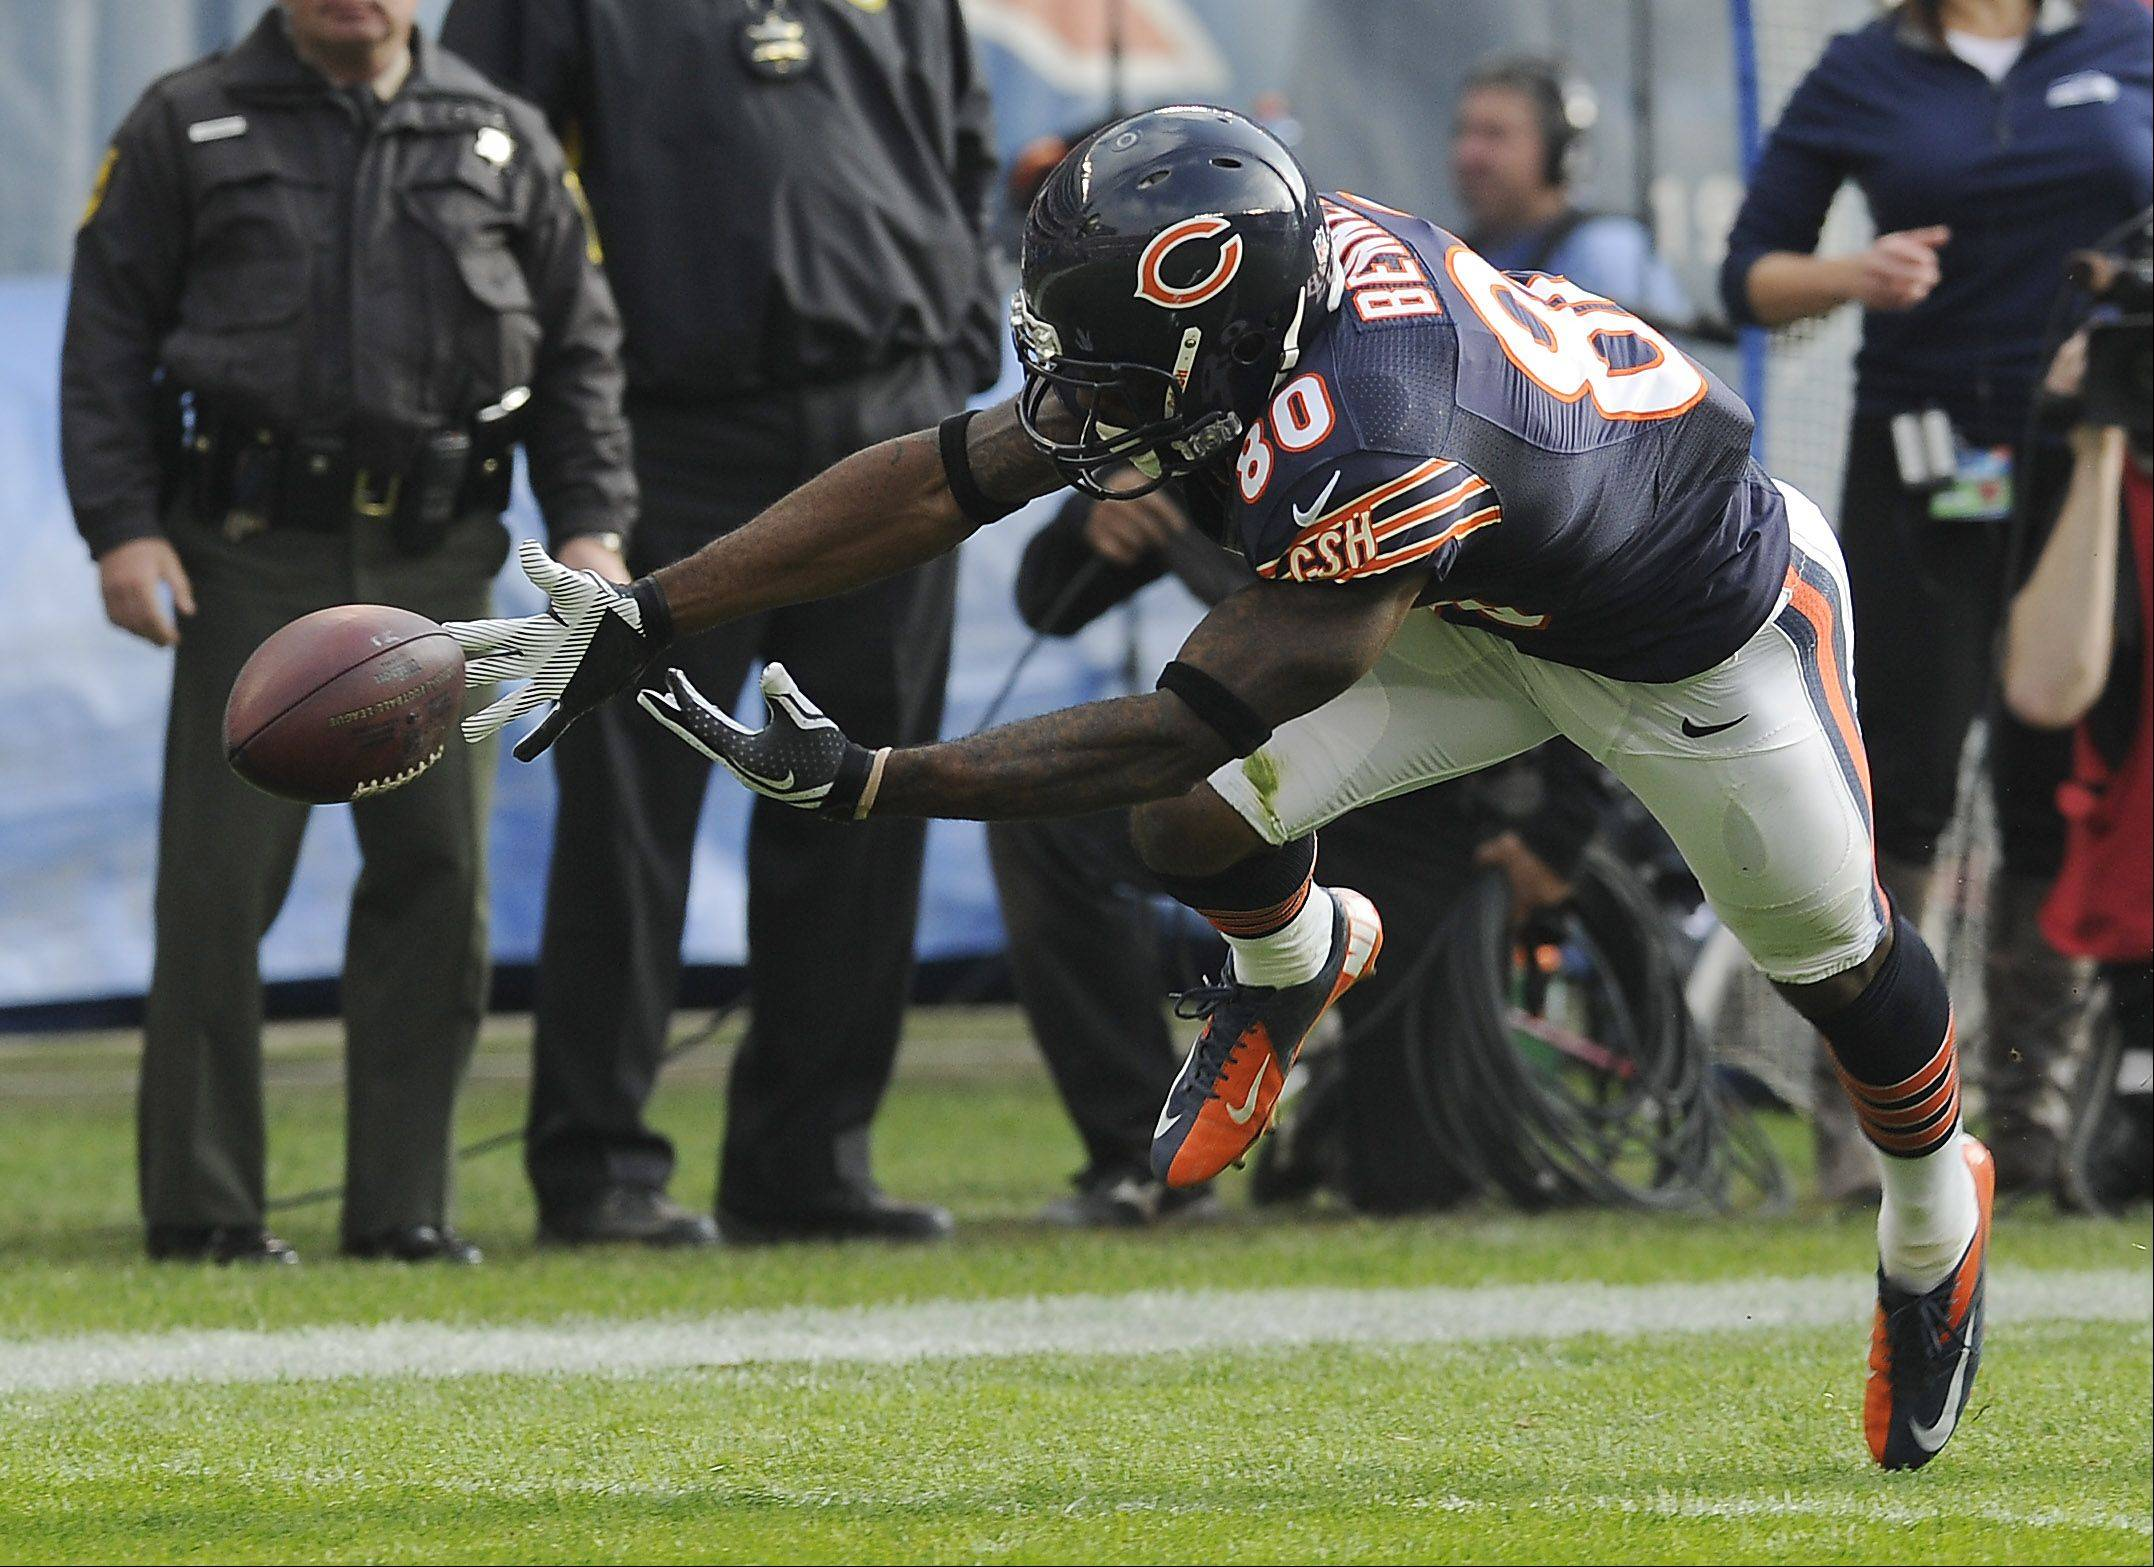 Bears Earl Bennett bobbles the ball in what would have been a touchdown in the first half at Soldier Field in Chicago.